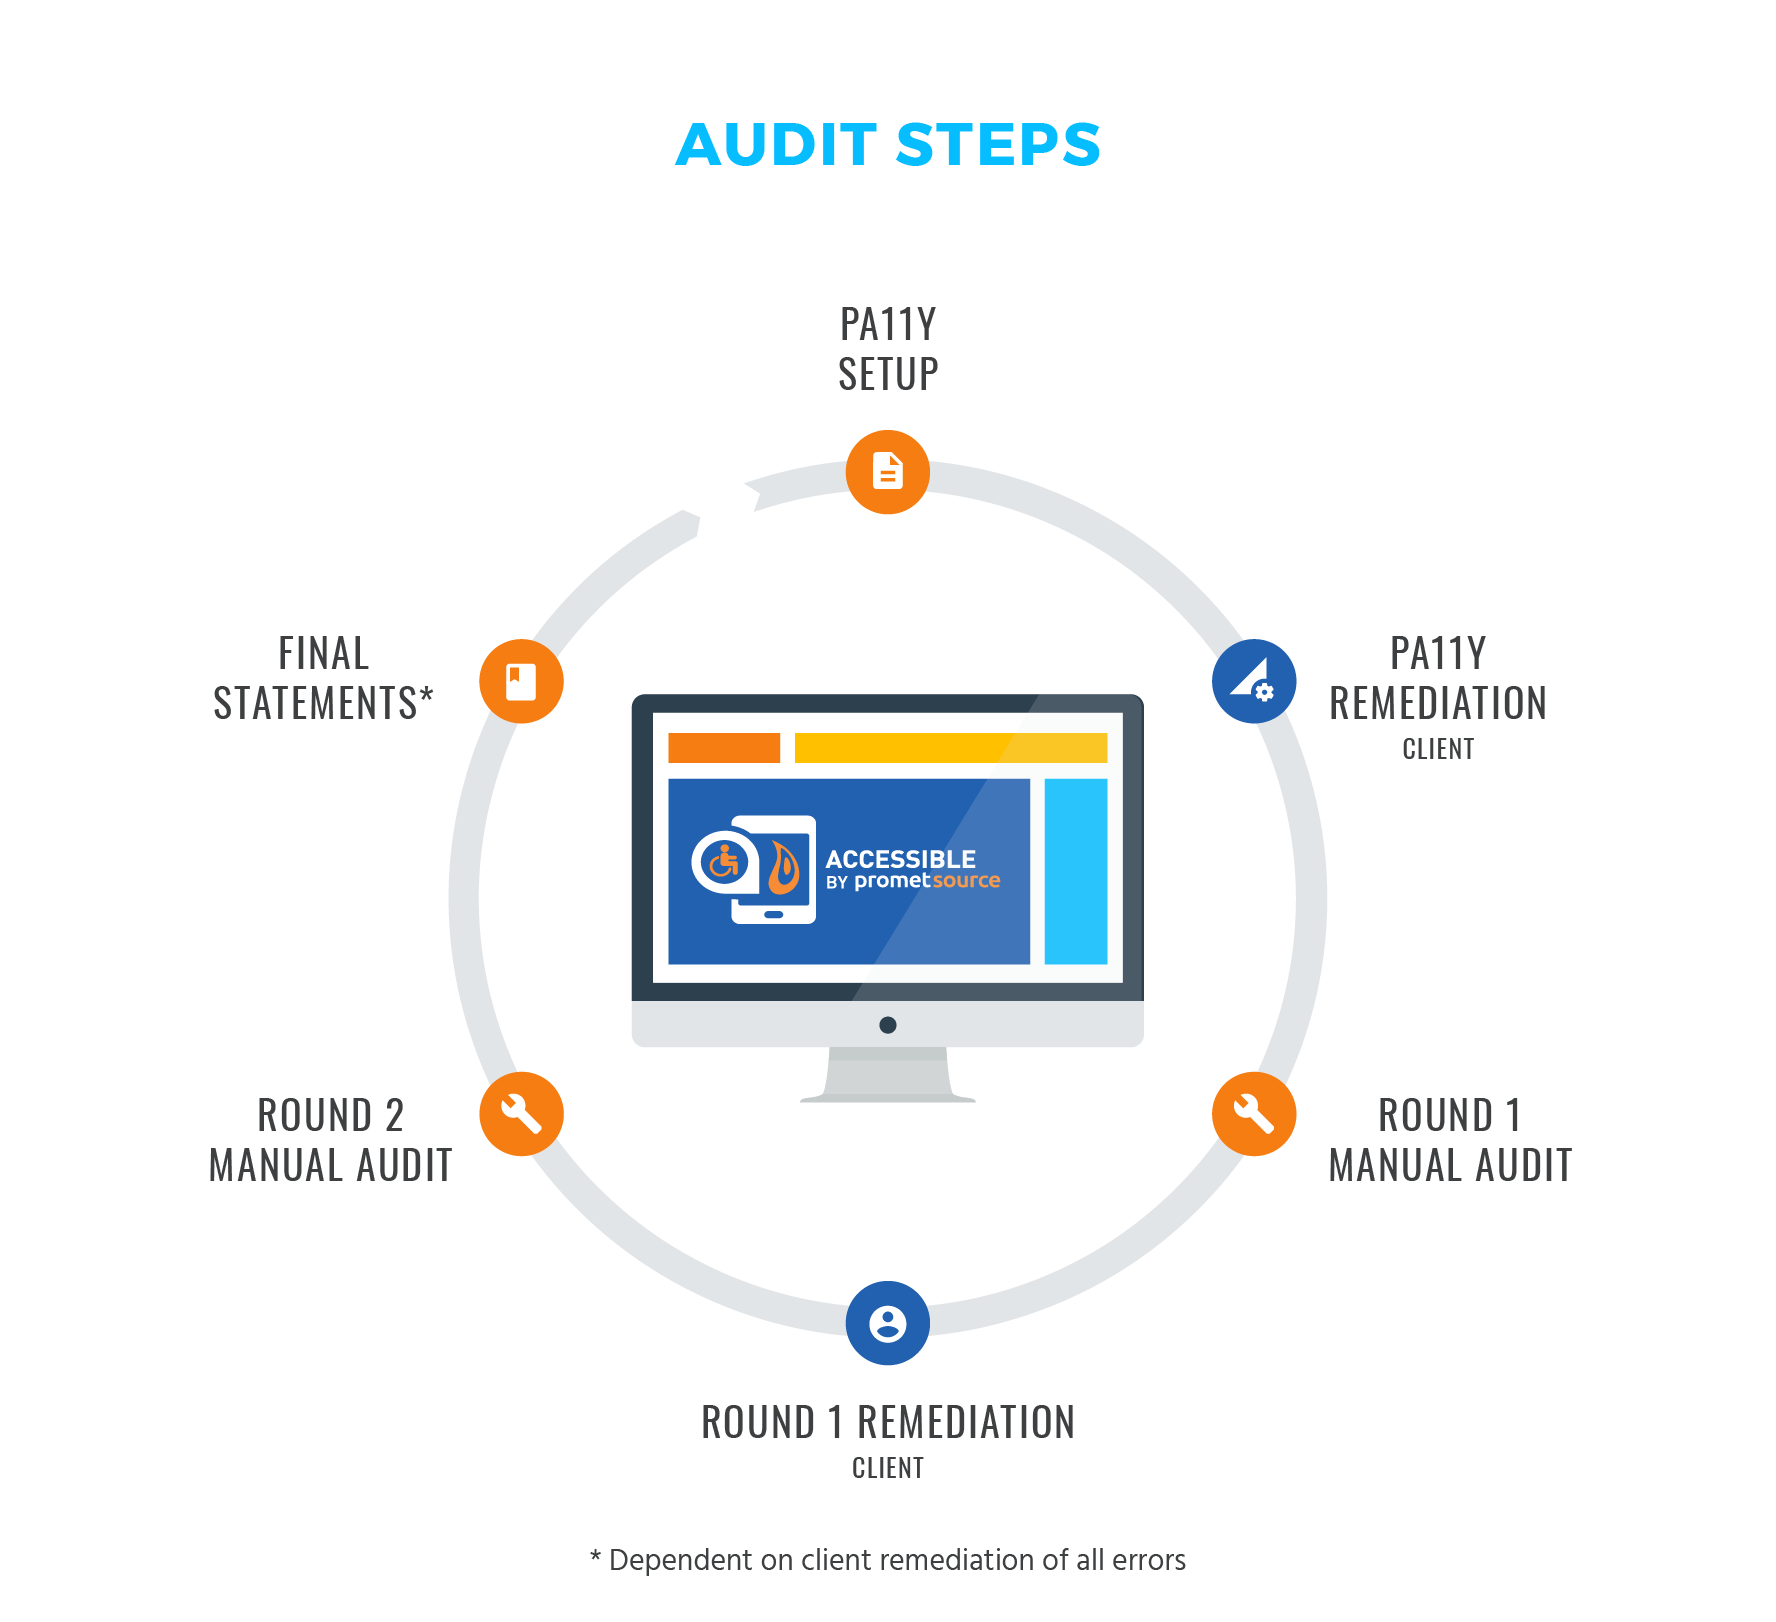 A circular graphic that indicates the six steps in a Promet Source Accessibility Audit. 1. PA11Y Setup 2. PA11Y Remediation 3. Round 1 Manual Audit 4. Round 1 Remediation 5. Round 2 Manual Audit 6. Final Statements